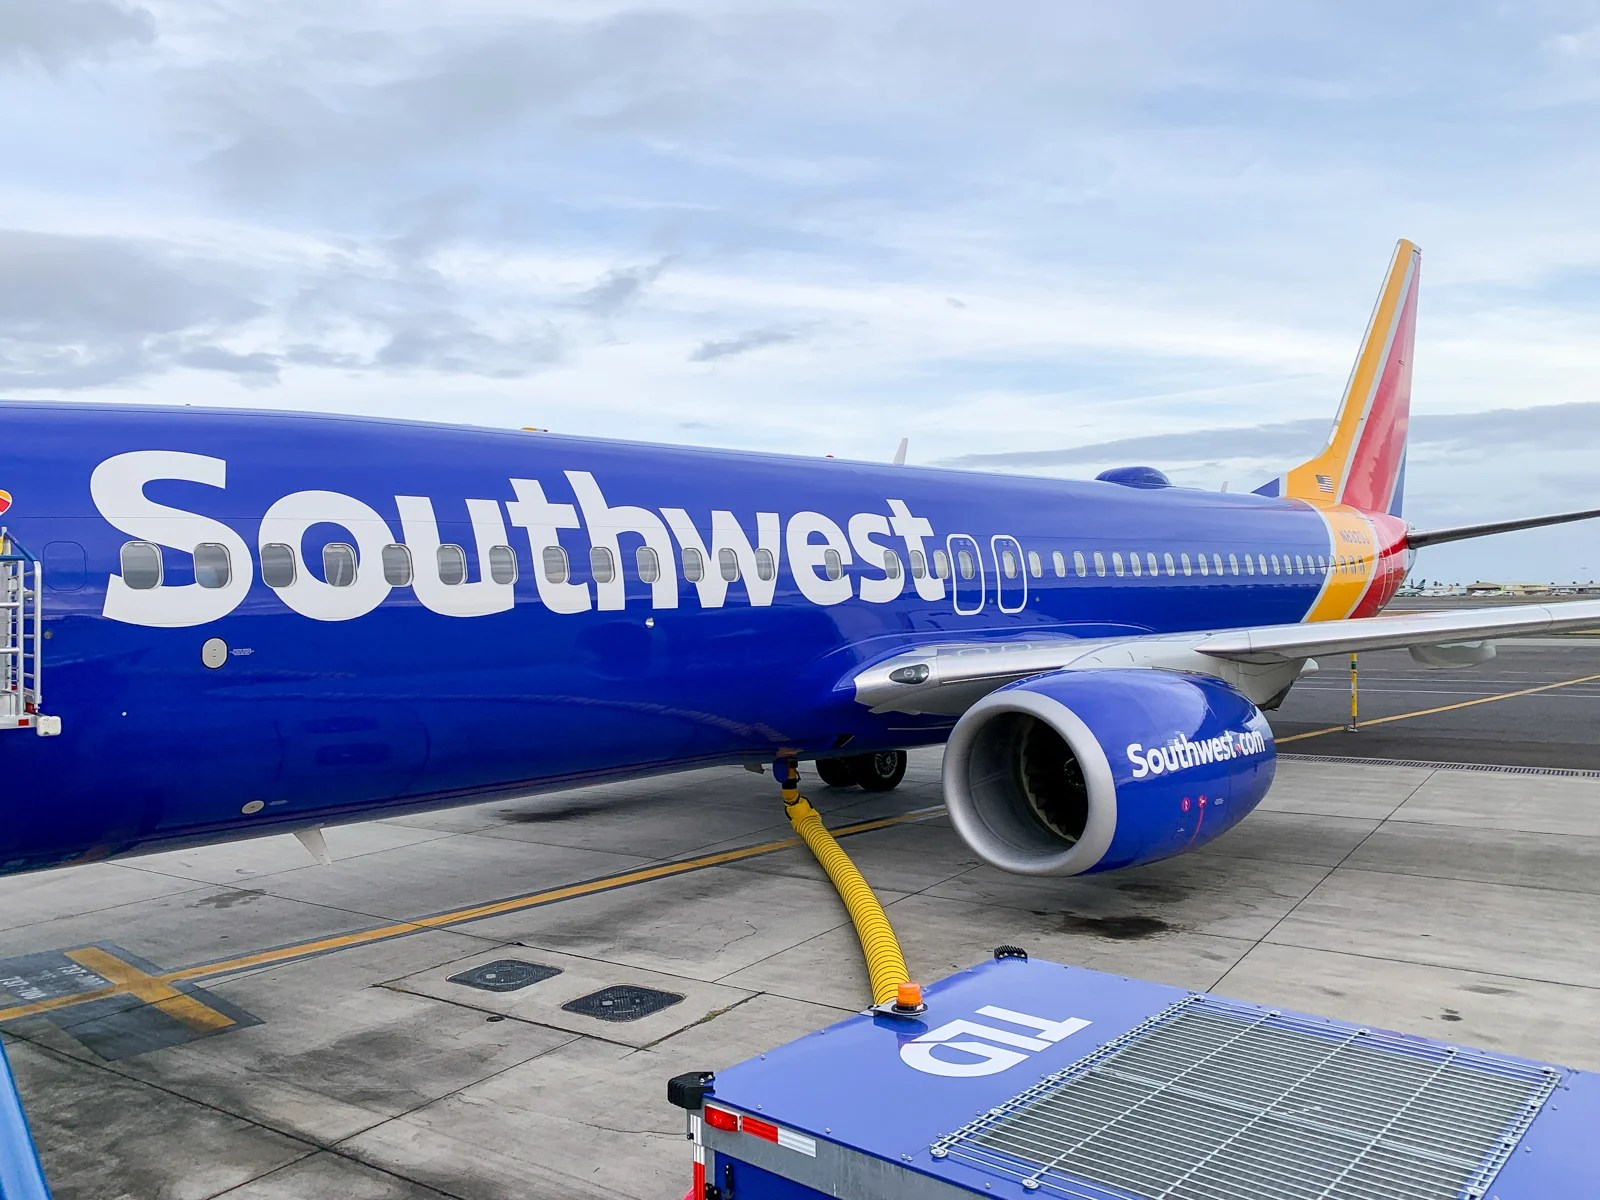 Exclusive: Southwest increases Companion Pass requirements, eliminates point expiration